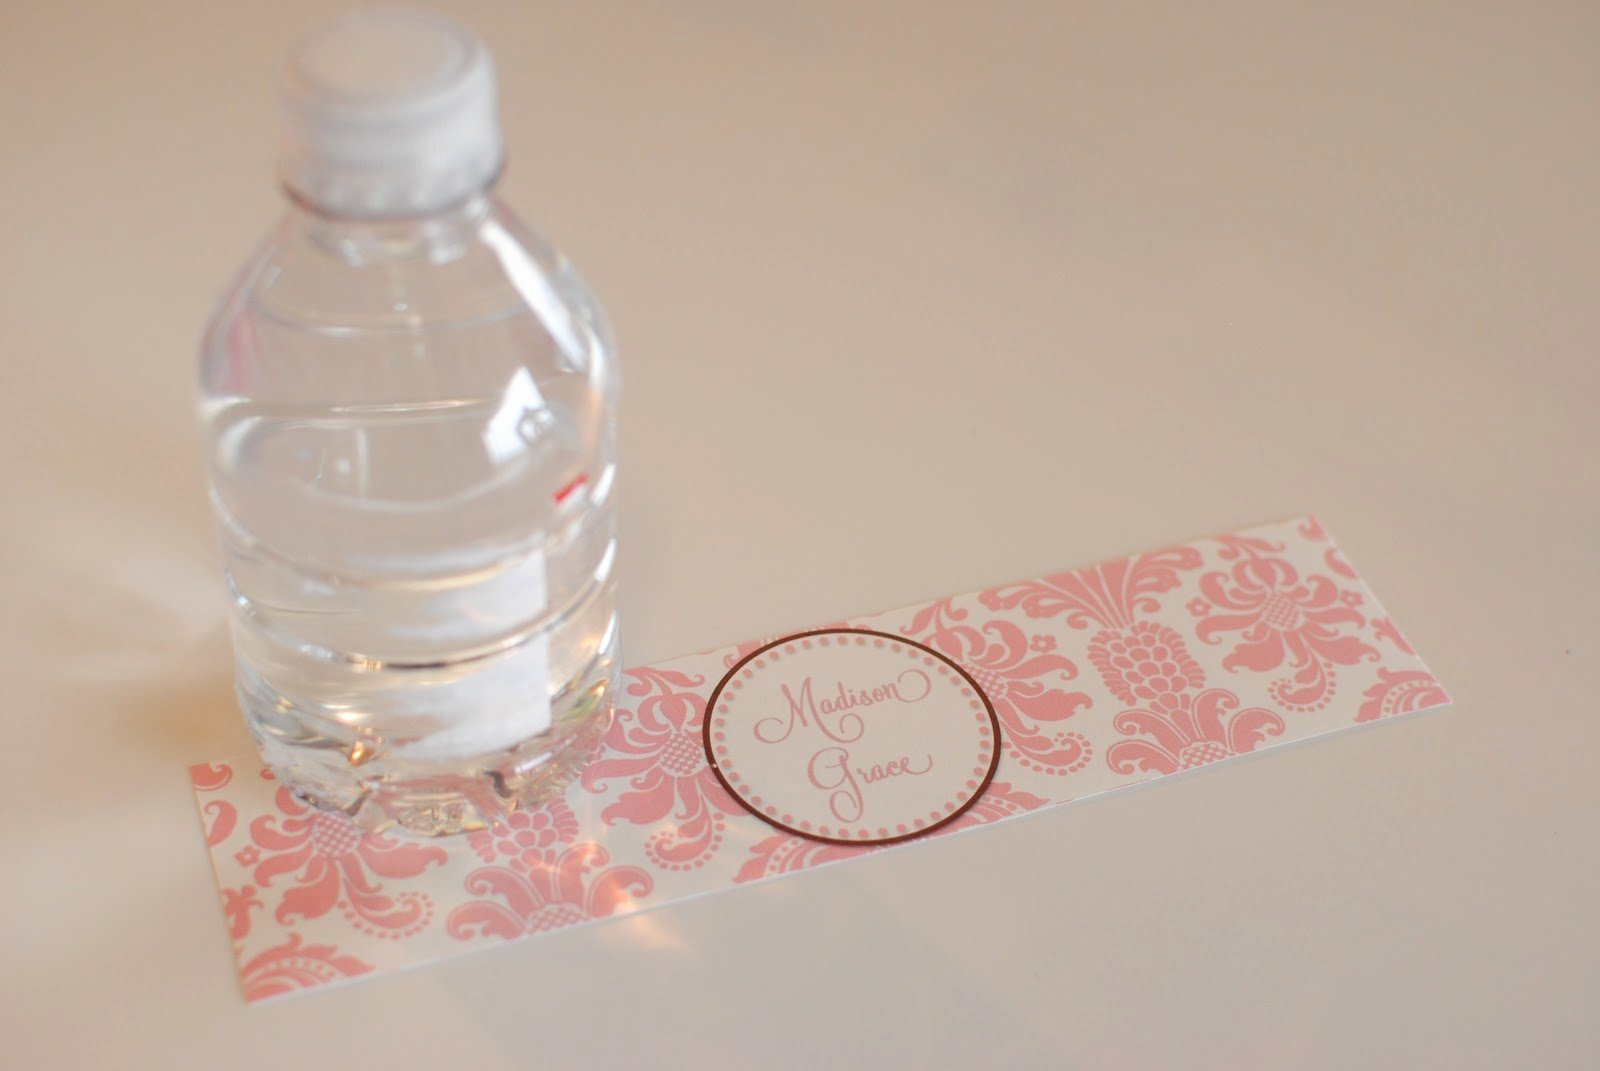 Printable Water Bottle Labels New Life Sweet Life Diy Printable Water Bottle Labels